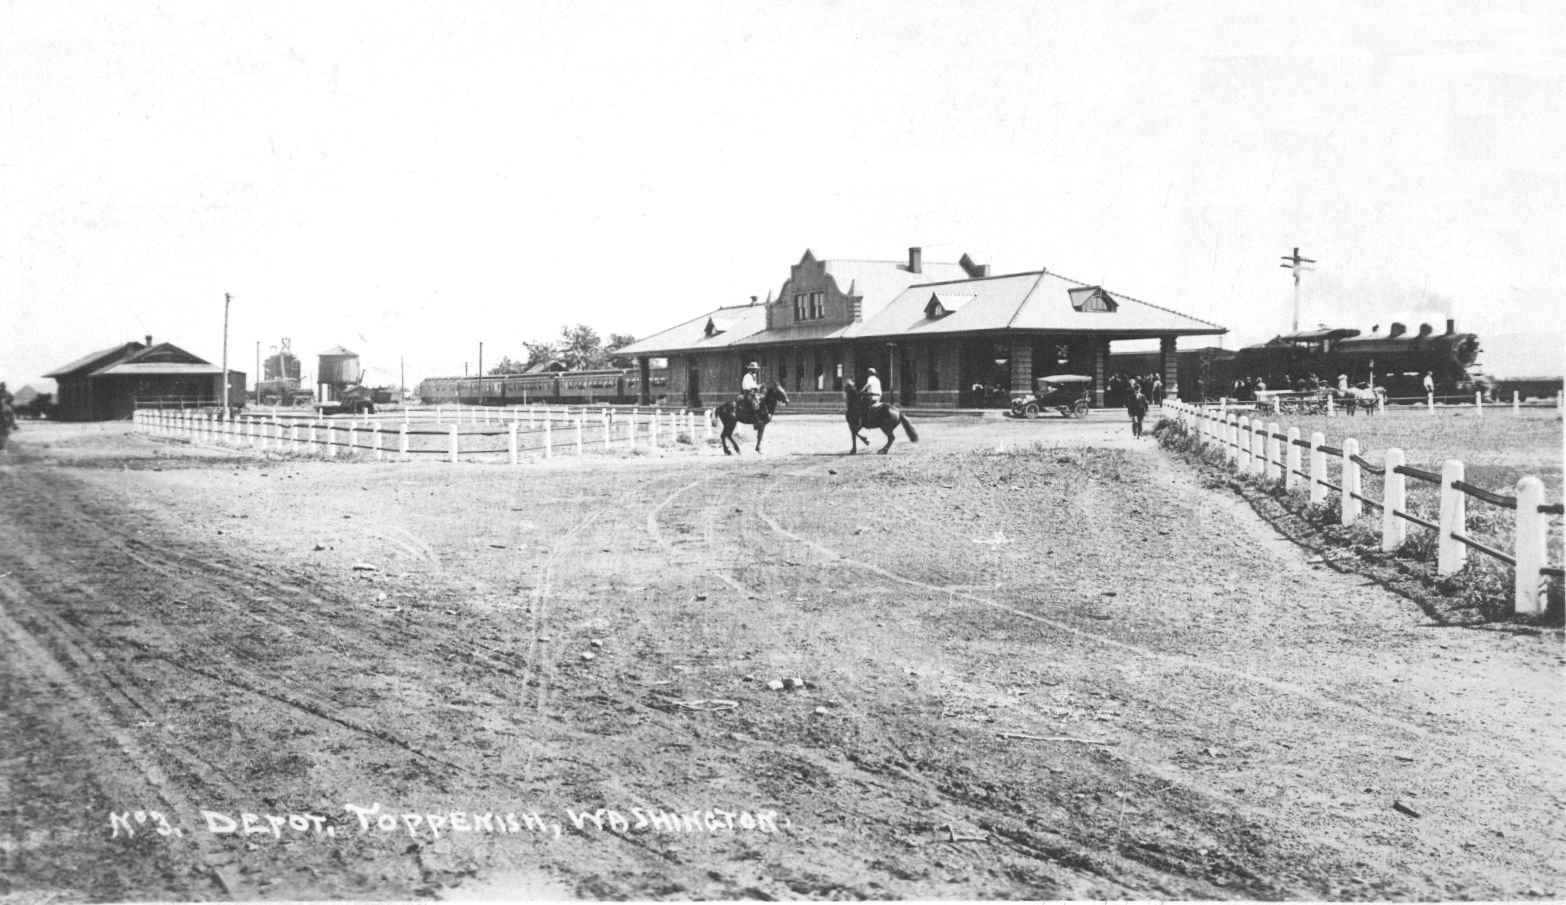 The wooden depot in 1885 was replaced with a brick building in 1911